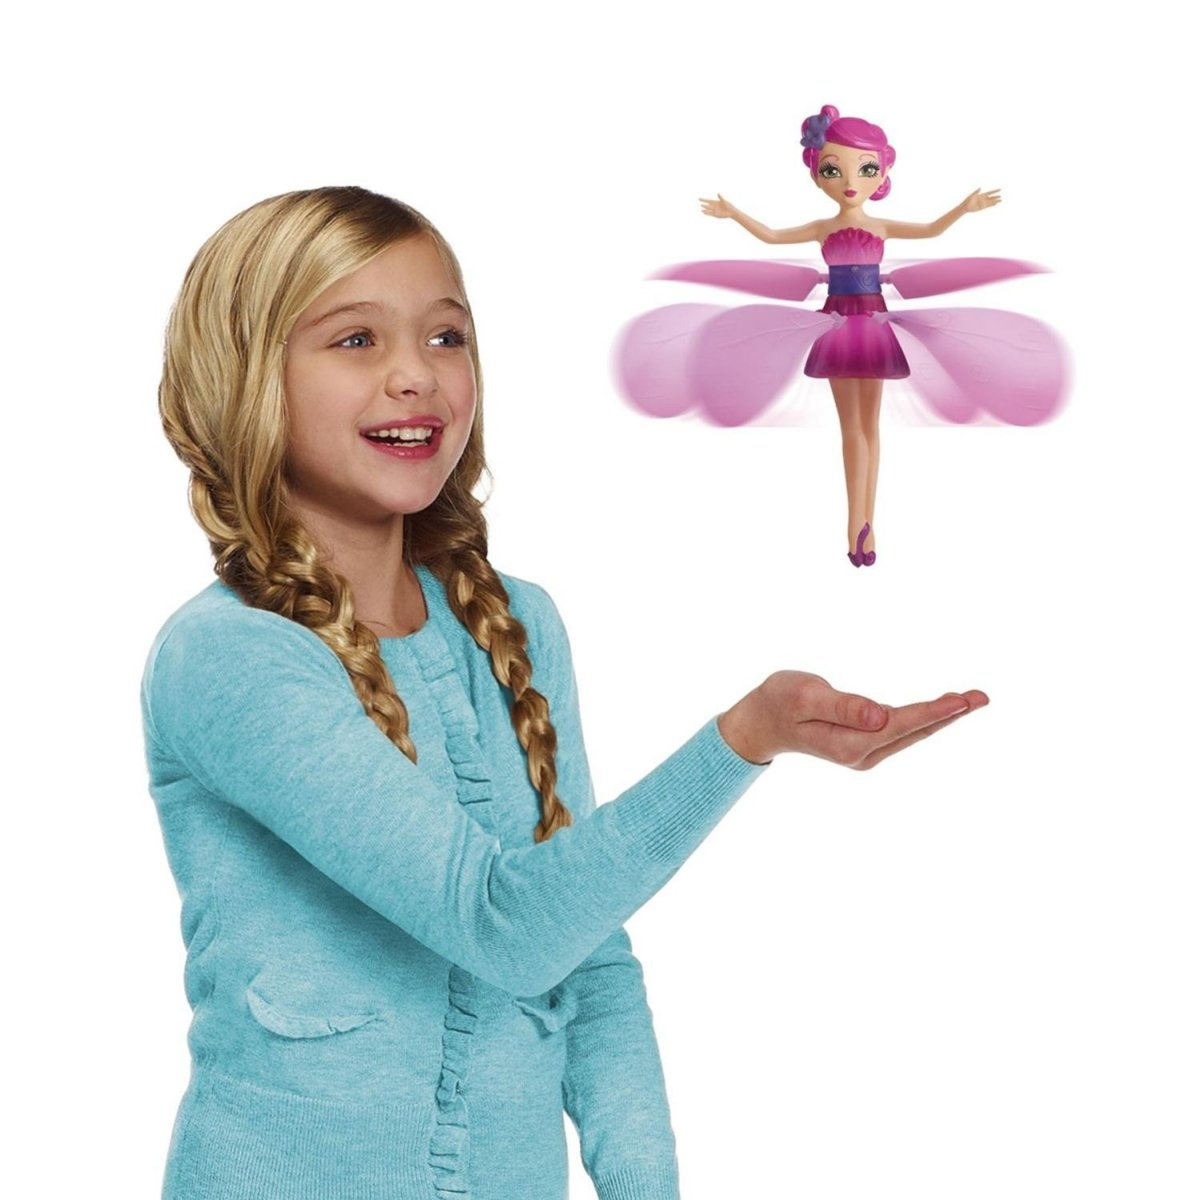 Flutterby Fairy - A toy that makes magic come to life